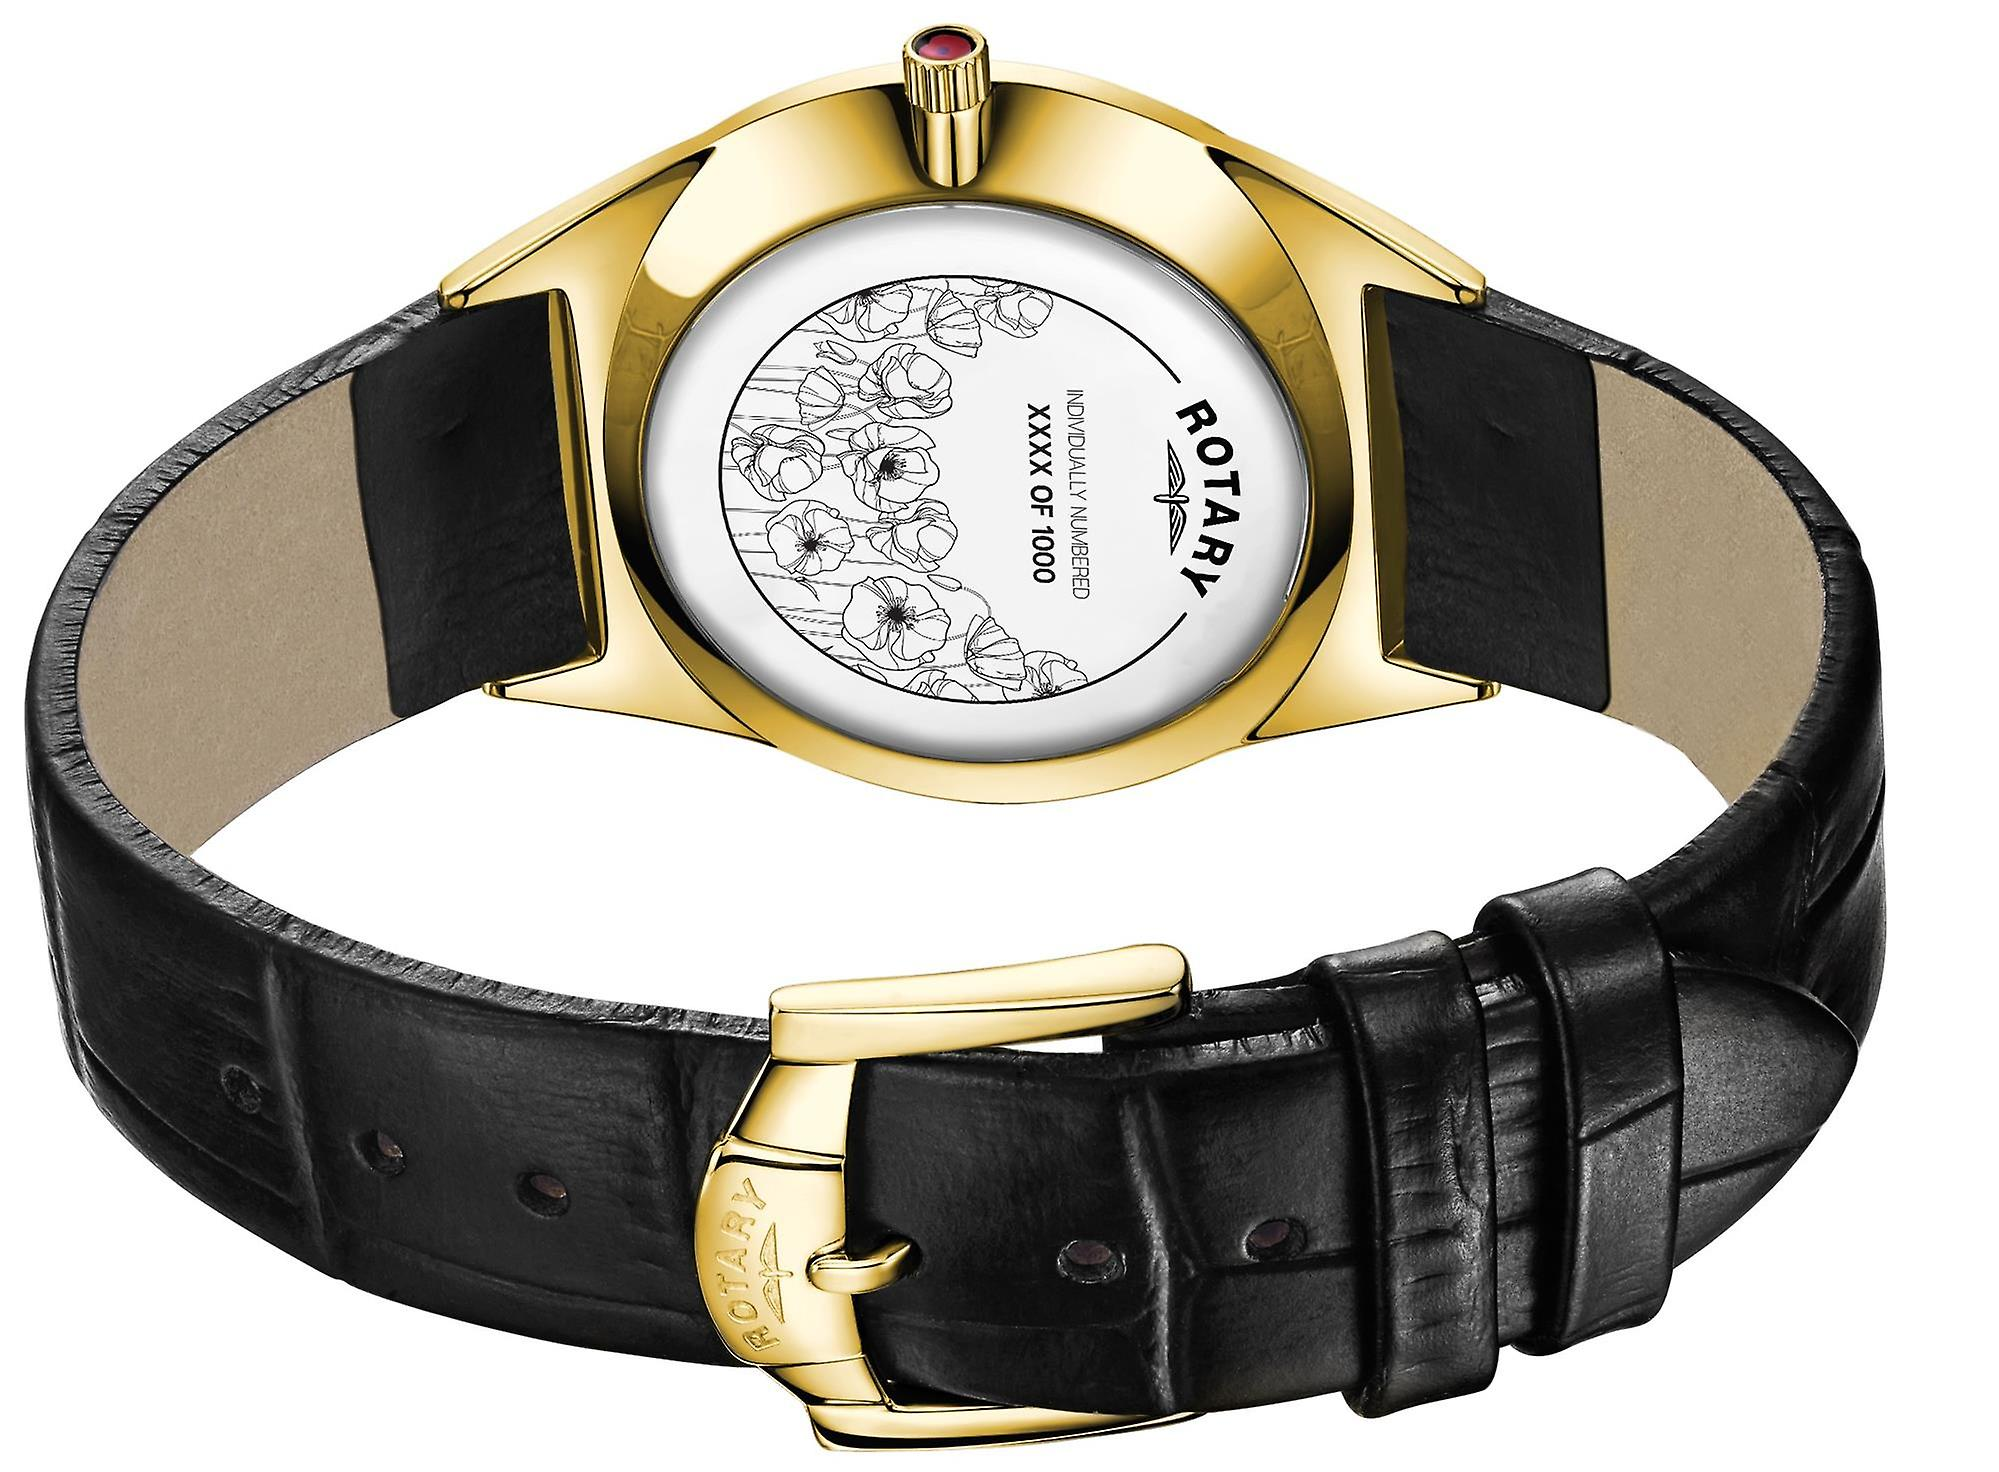 Rotary Limited Edition Poppy Quartz Gold PVD Case Black Leather Strap Mens Watch